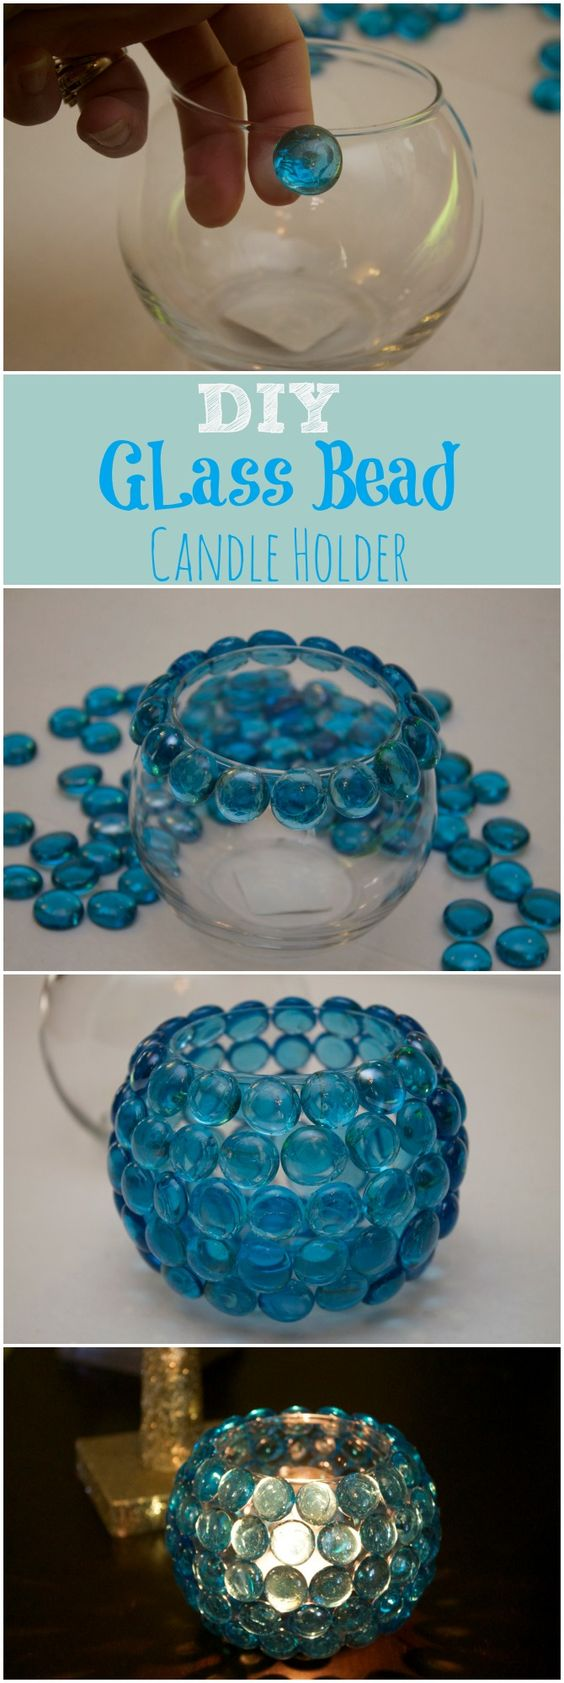 DIY glass bead candle holder is simple, easy and an inexpensive craft